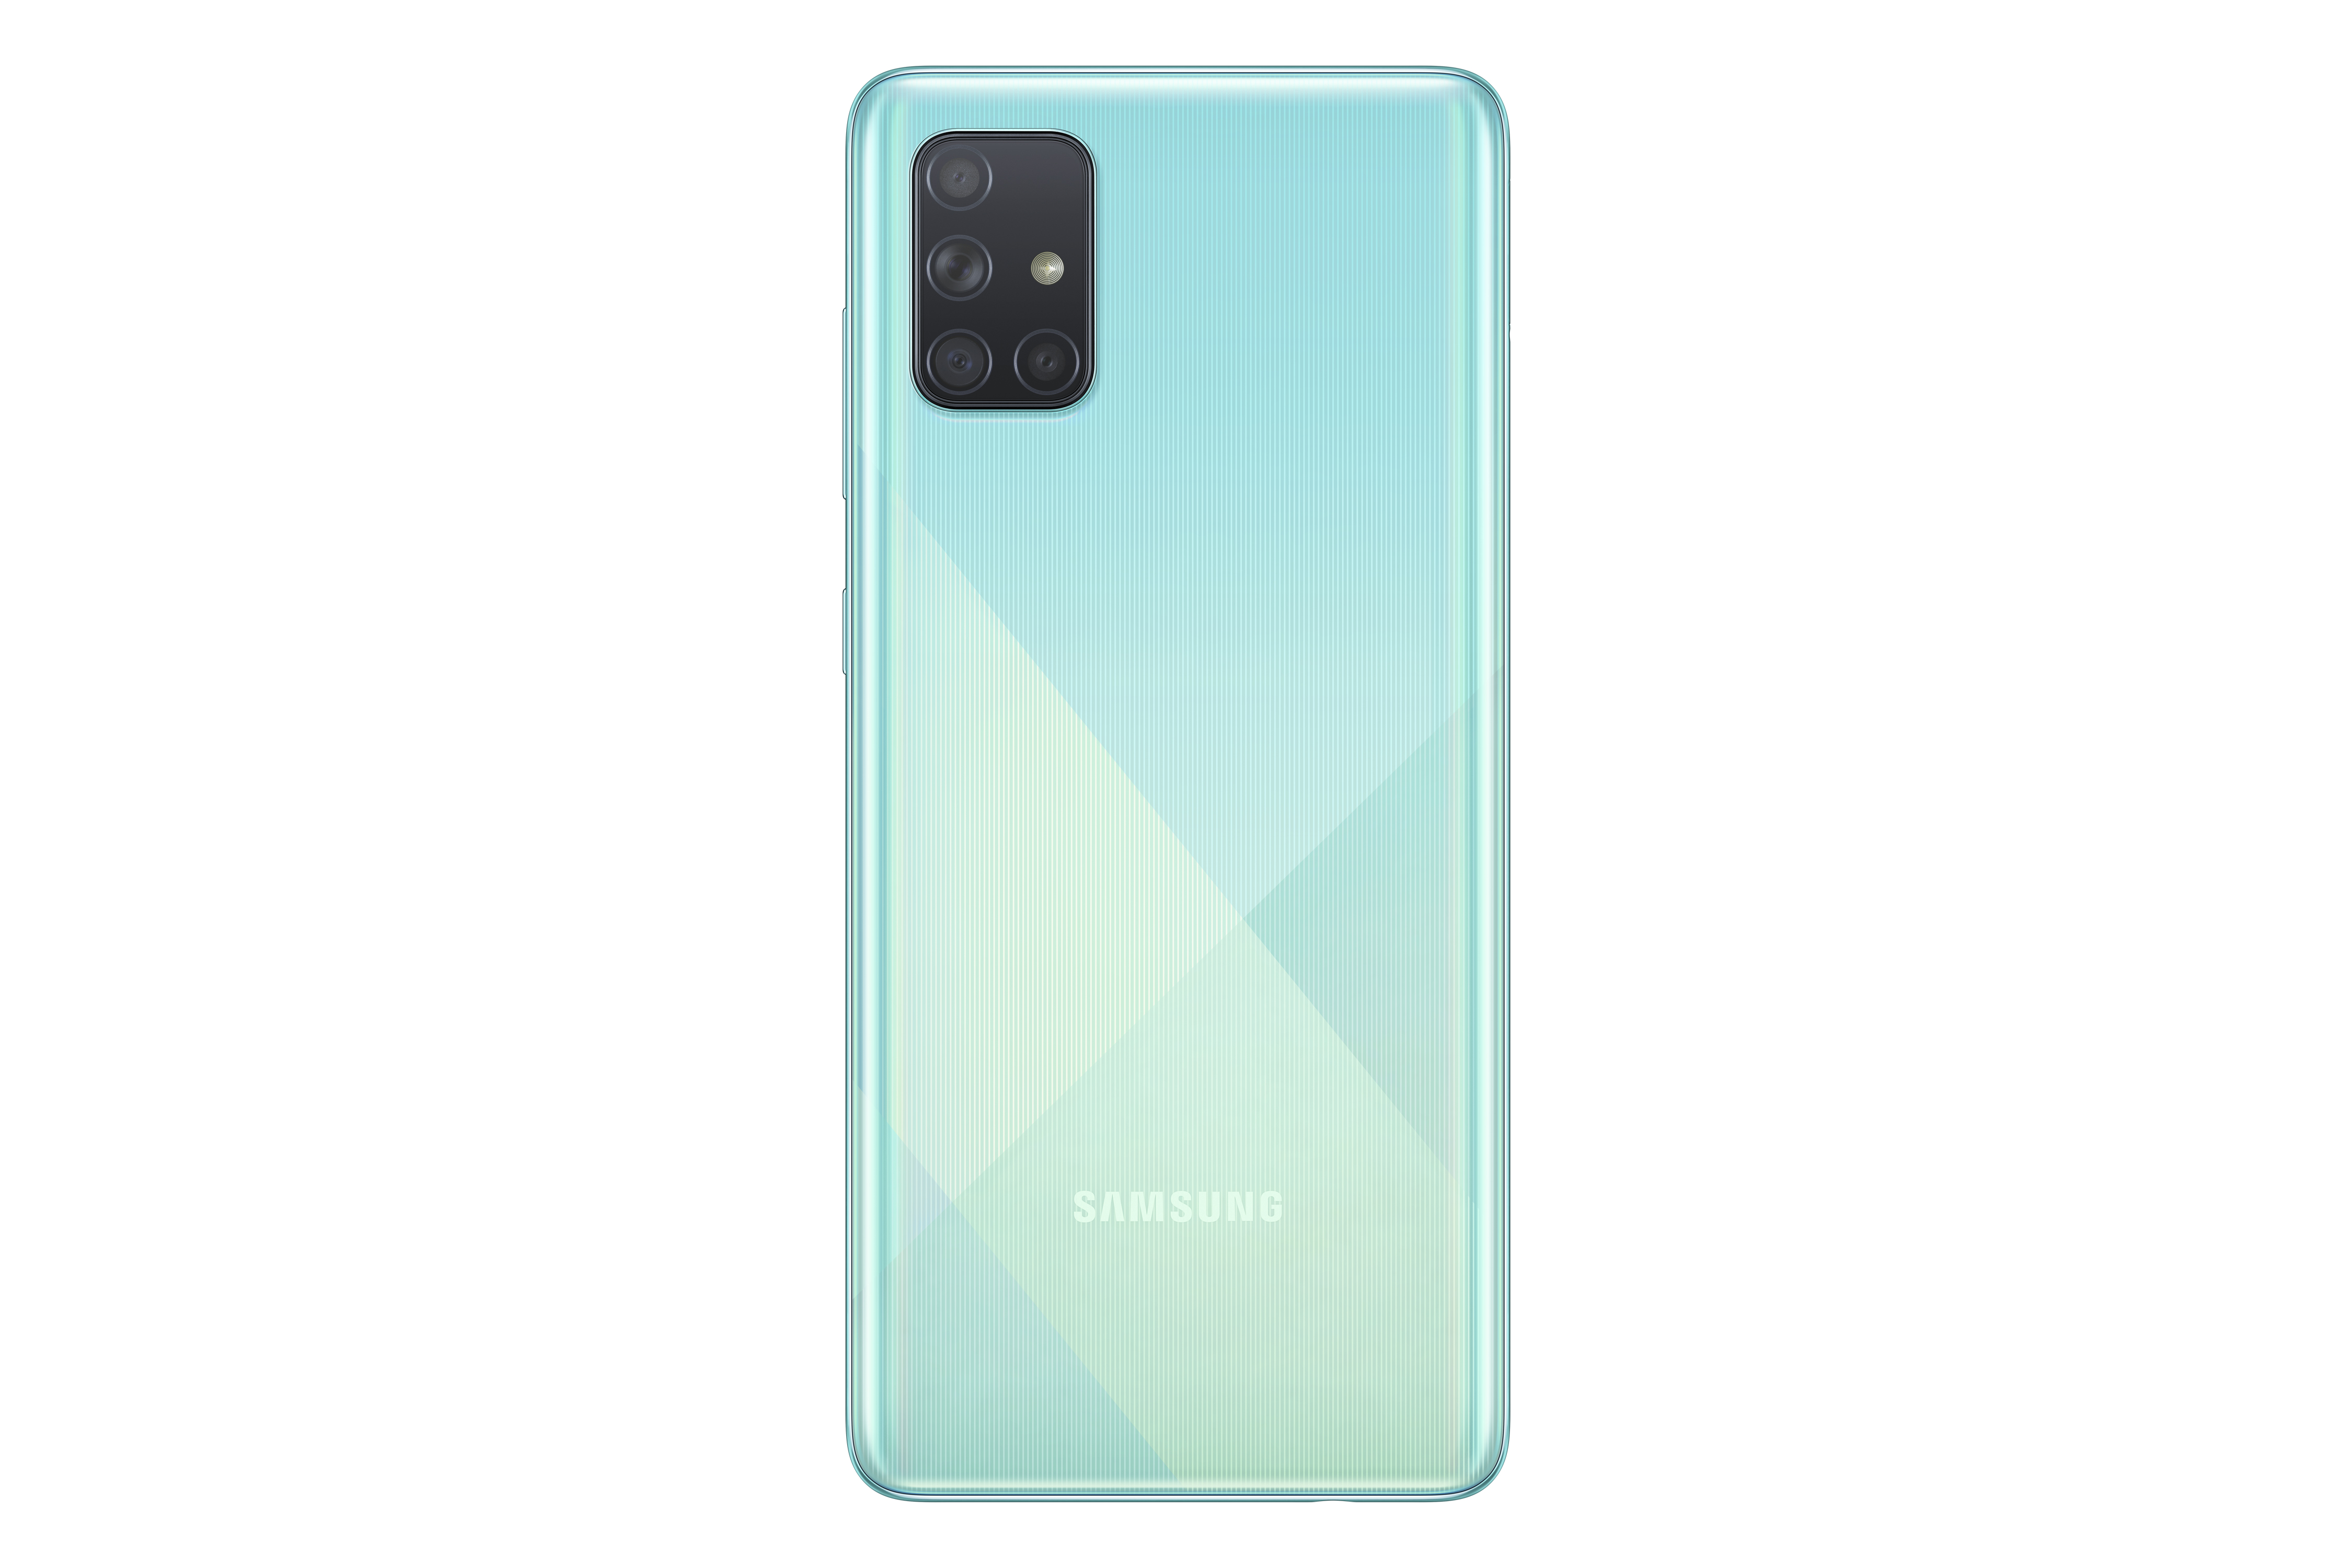 Samsung Announces The New Galaxy A71 And Galaxy A51